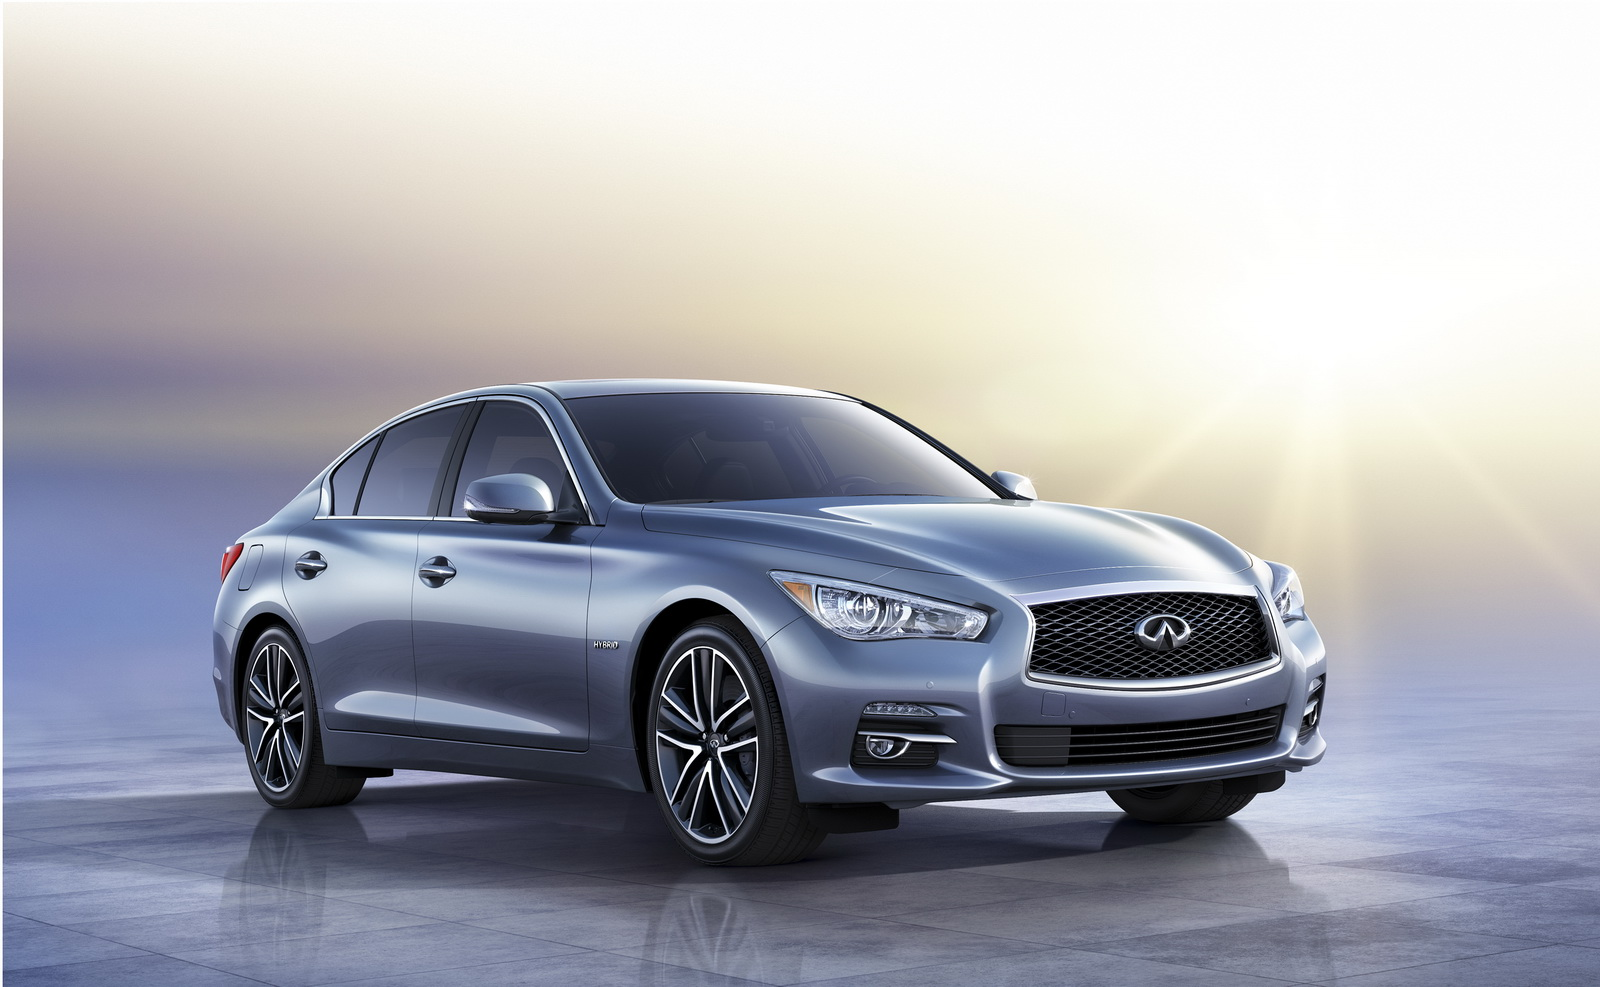 2014 infiniti q50 sedan makes world debut at north american international auto show. Black Bedroom Furniture Sets. Home Design Ideas